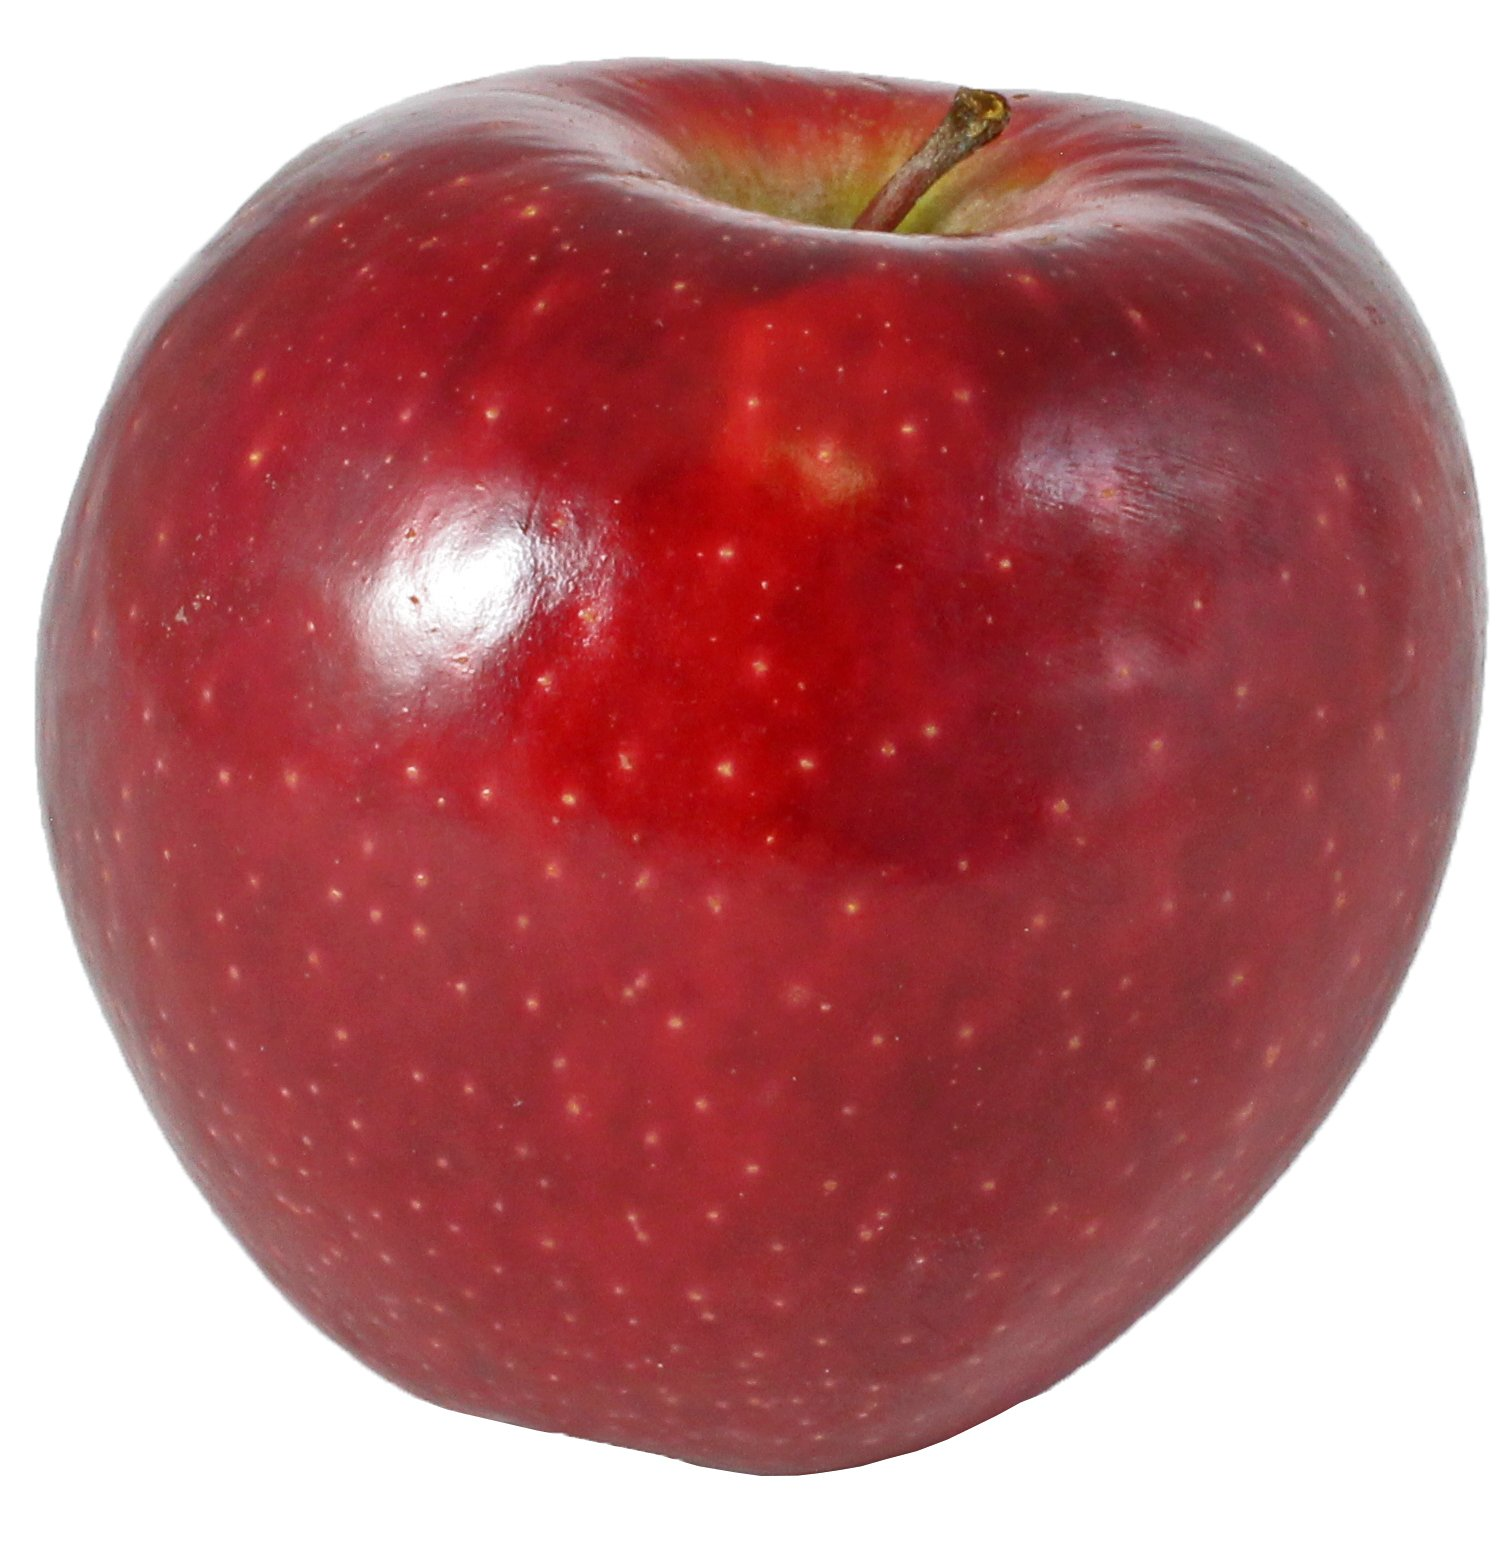 Different Types of Apples (with Photos!)